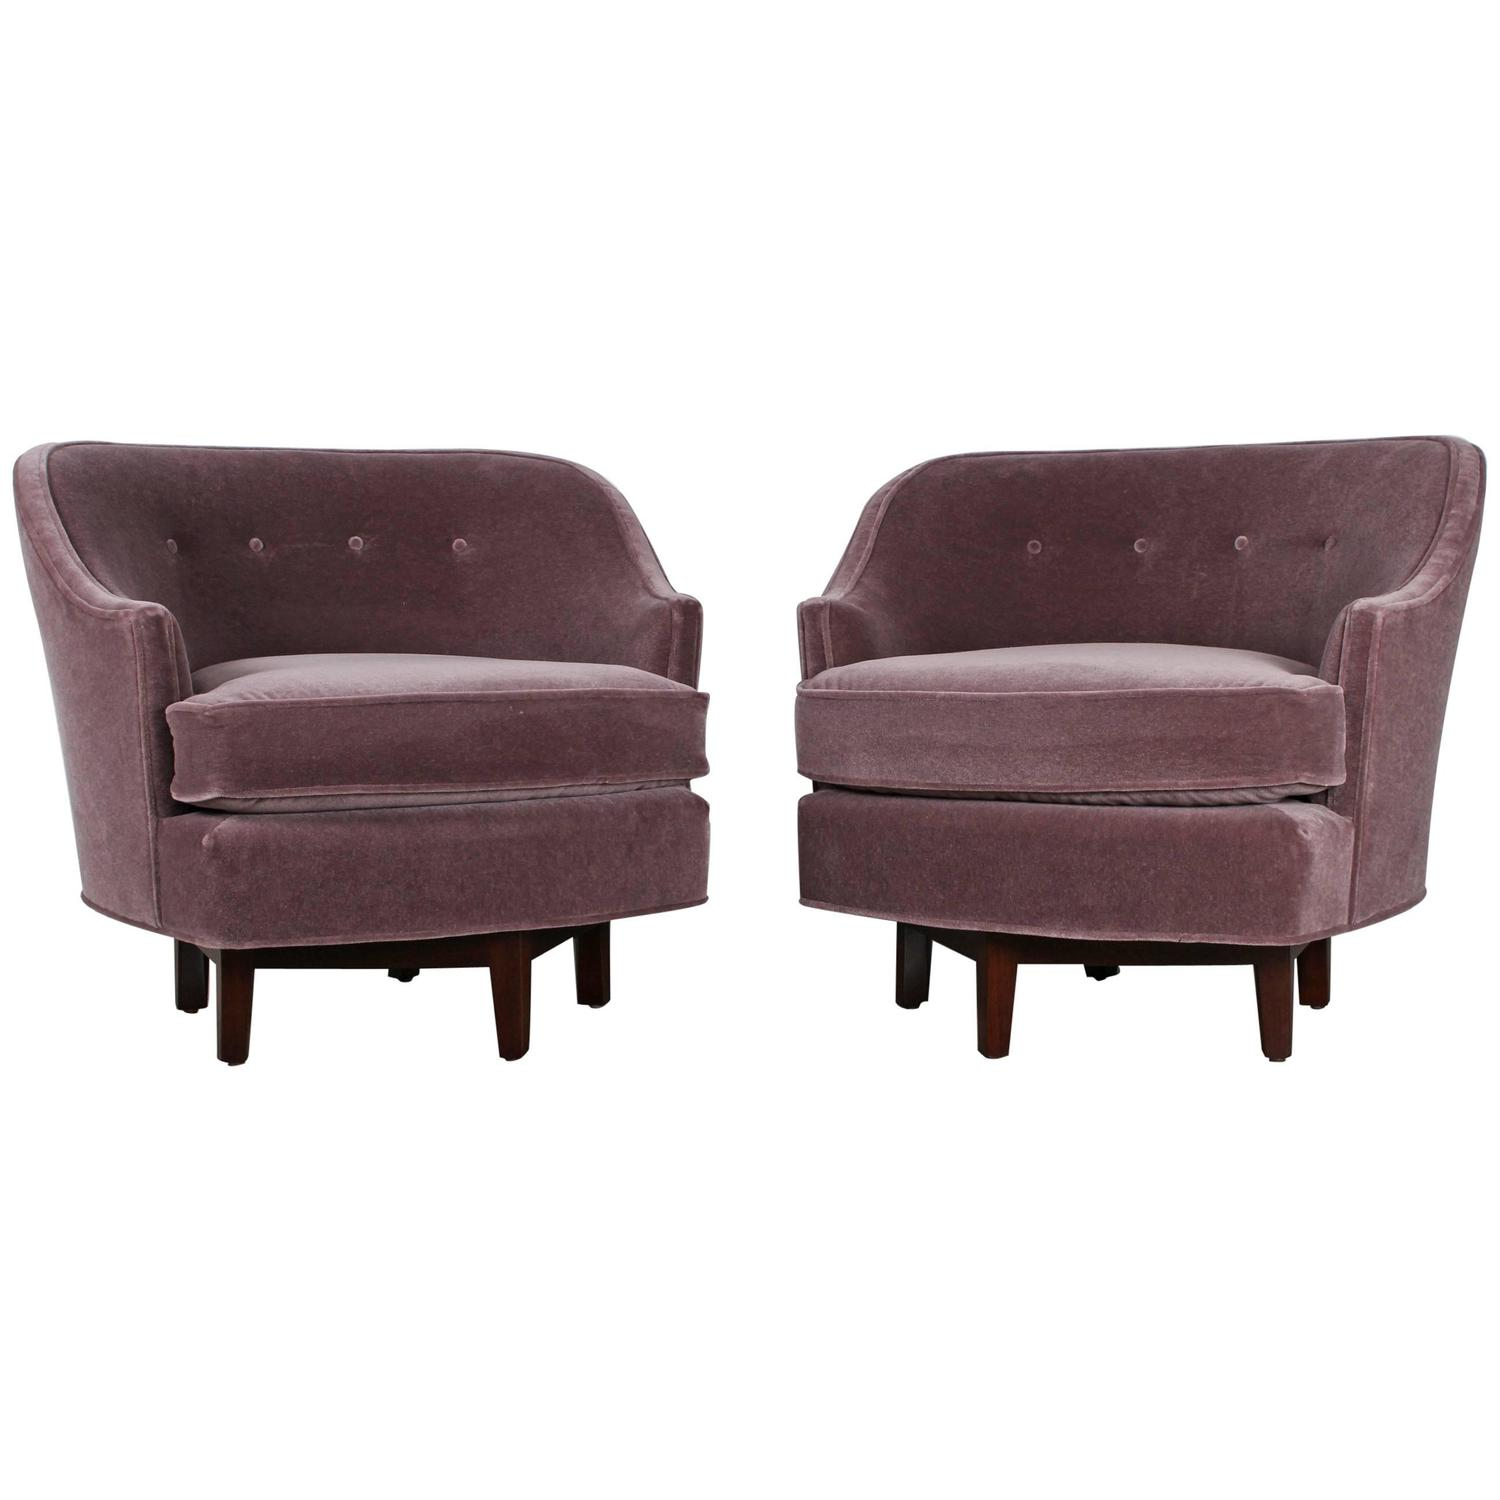 Pair of Dunbar Swivel Chairs by Edward Wormley For Sale at 1stdibs